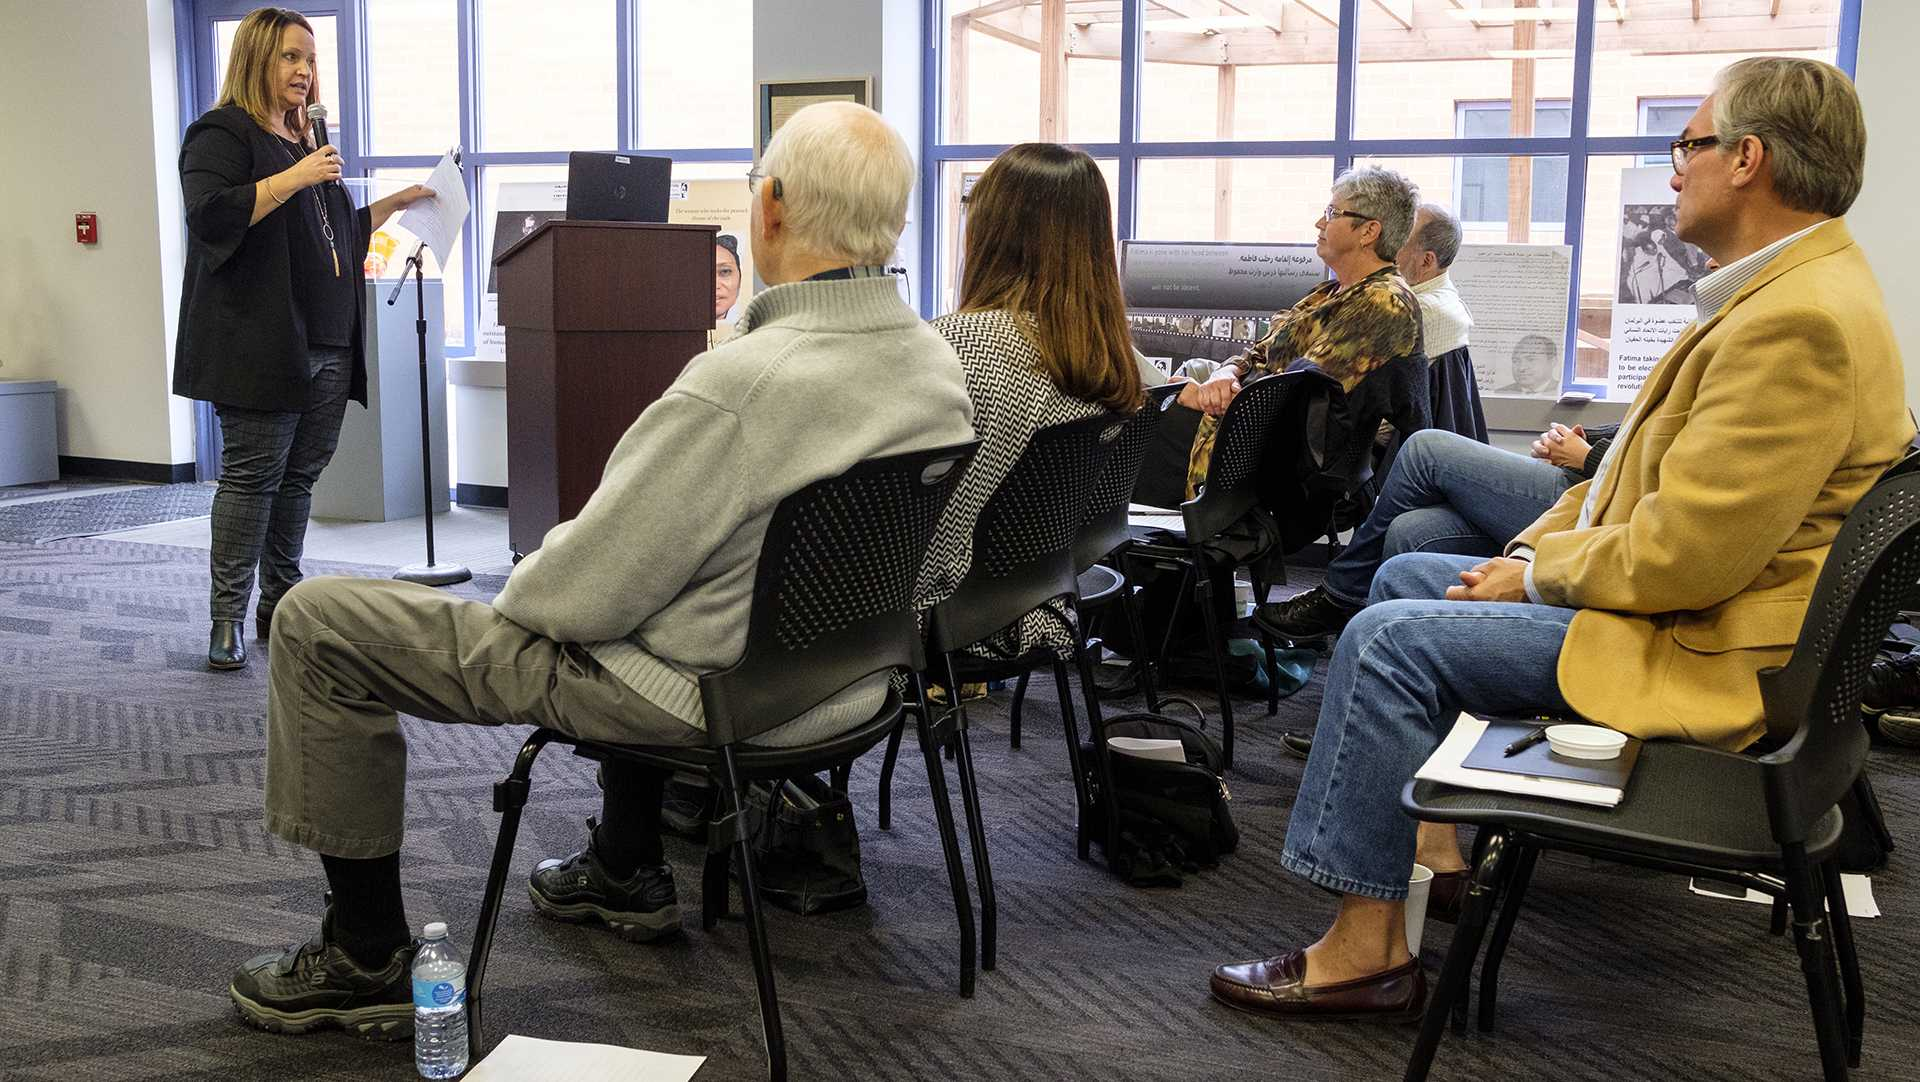 Cathy McGinnis, a probation officer in Iowa's 6th district of correctional services speaks at an event addressing the challenges individuals convicted of crimes face when reentering society on Tuesday, Oct. 24, 2017. McGinnis addressed the challenges of finding employment and housing with a criminal conviction on one's record. (Nick Rohlman/The Daily Iowan)